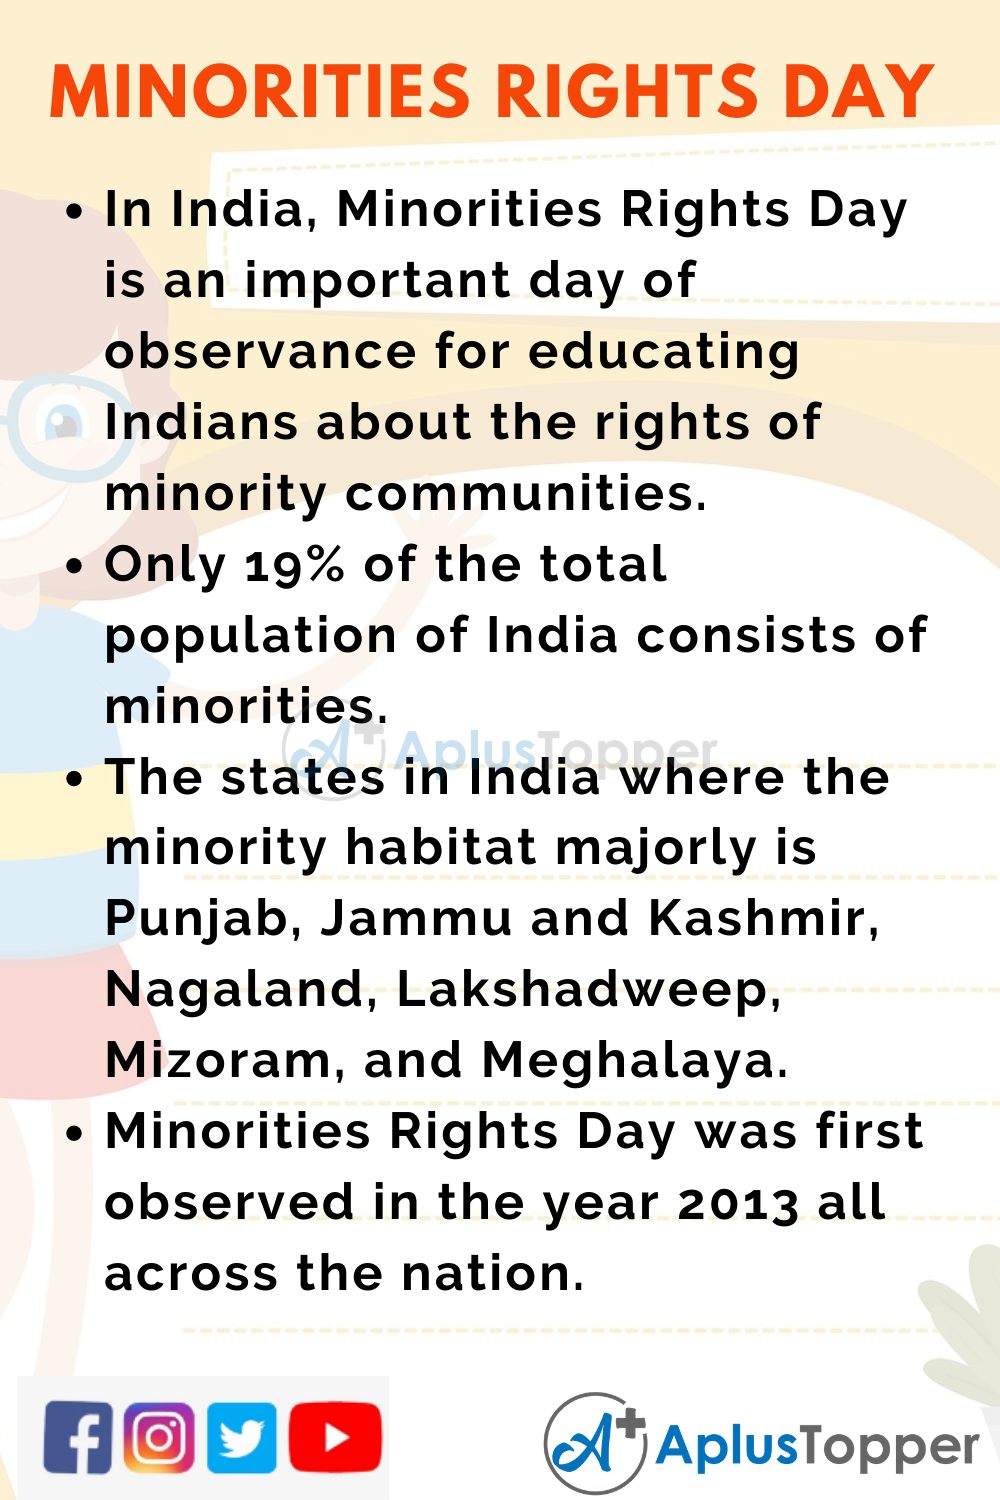 10 Lines On Minorities Rights Day in India for Higher Class Students